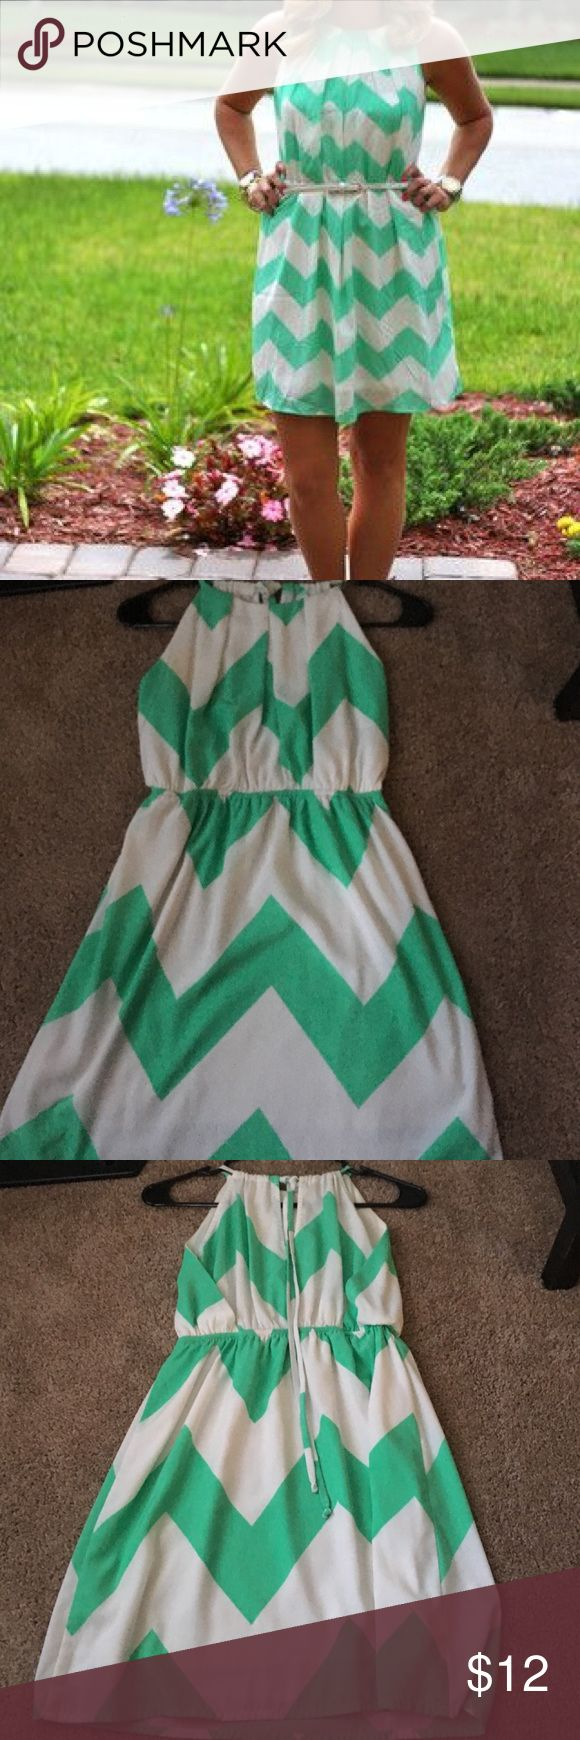 Mint Chevron Dress EUC mint chevron dress. Small flaw on right side, under arm area. Can easily be covered with sweater, and is not visible if arms are down. Pink Owl Dresses